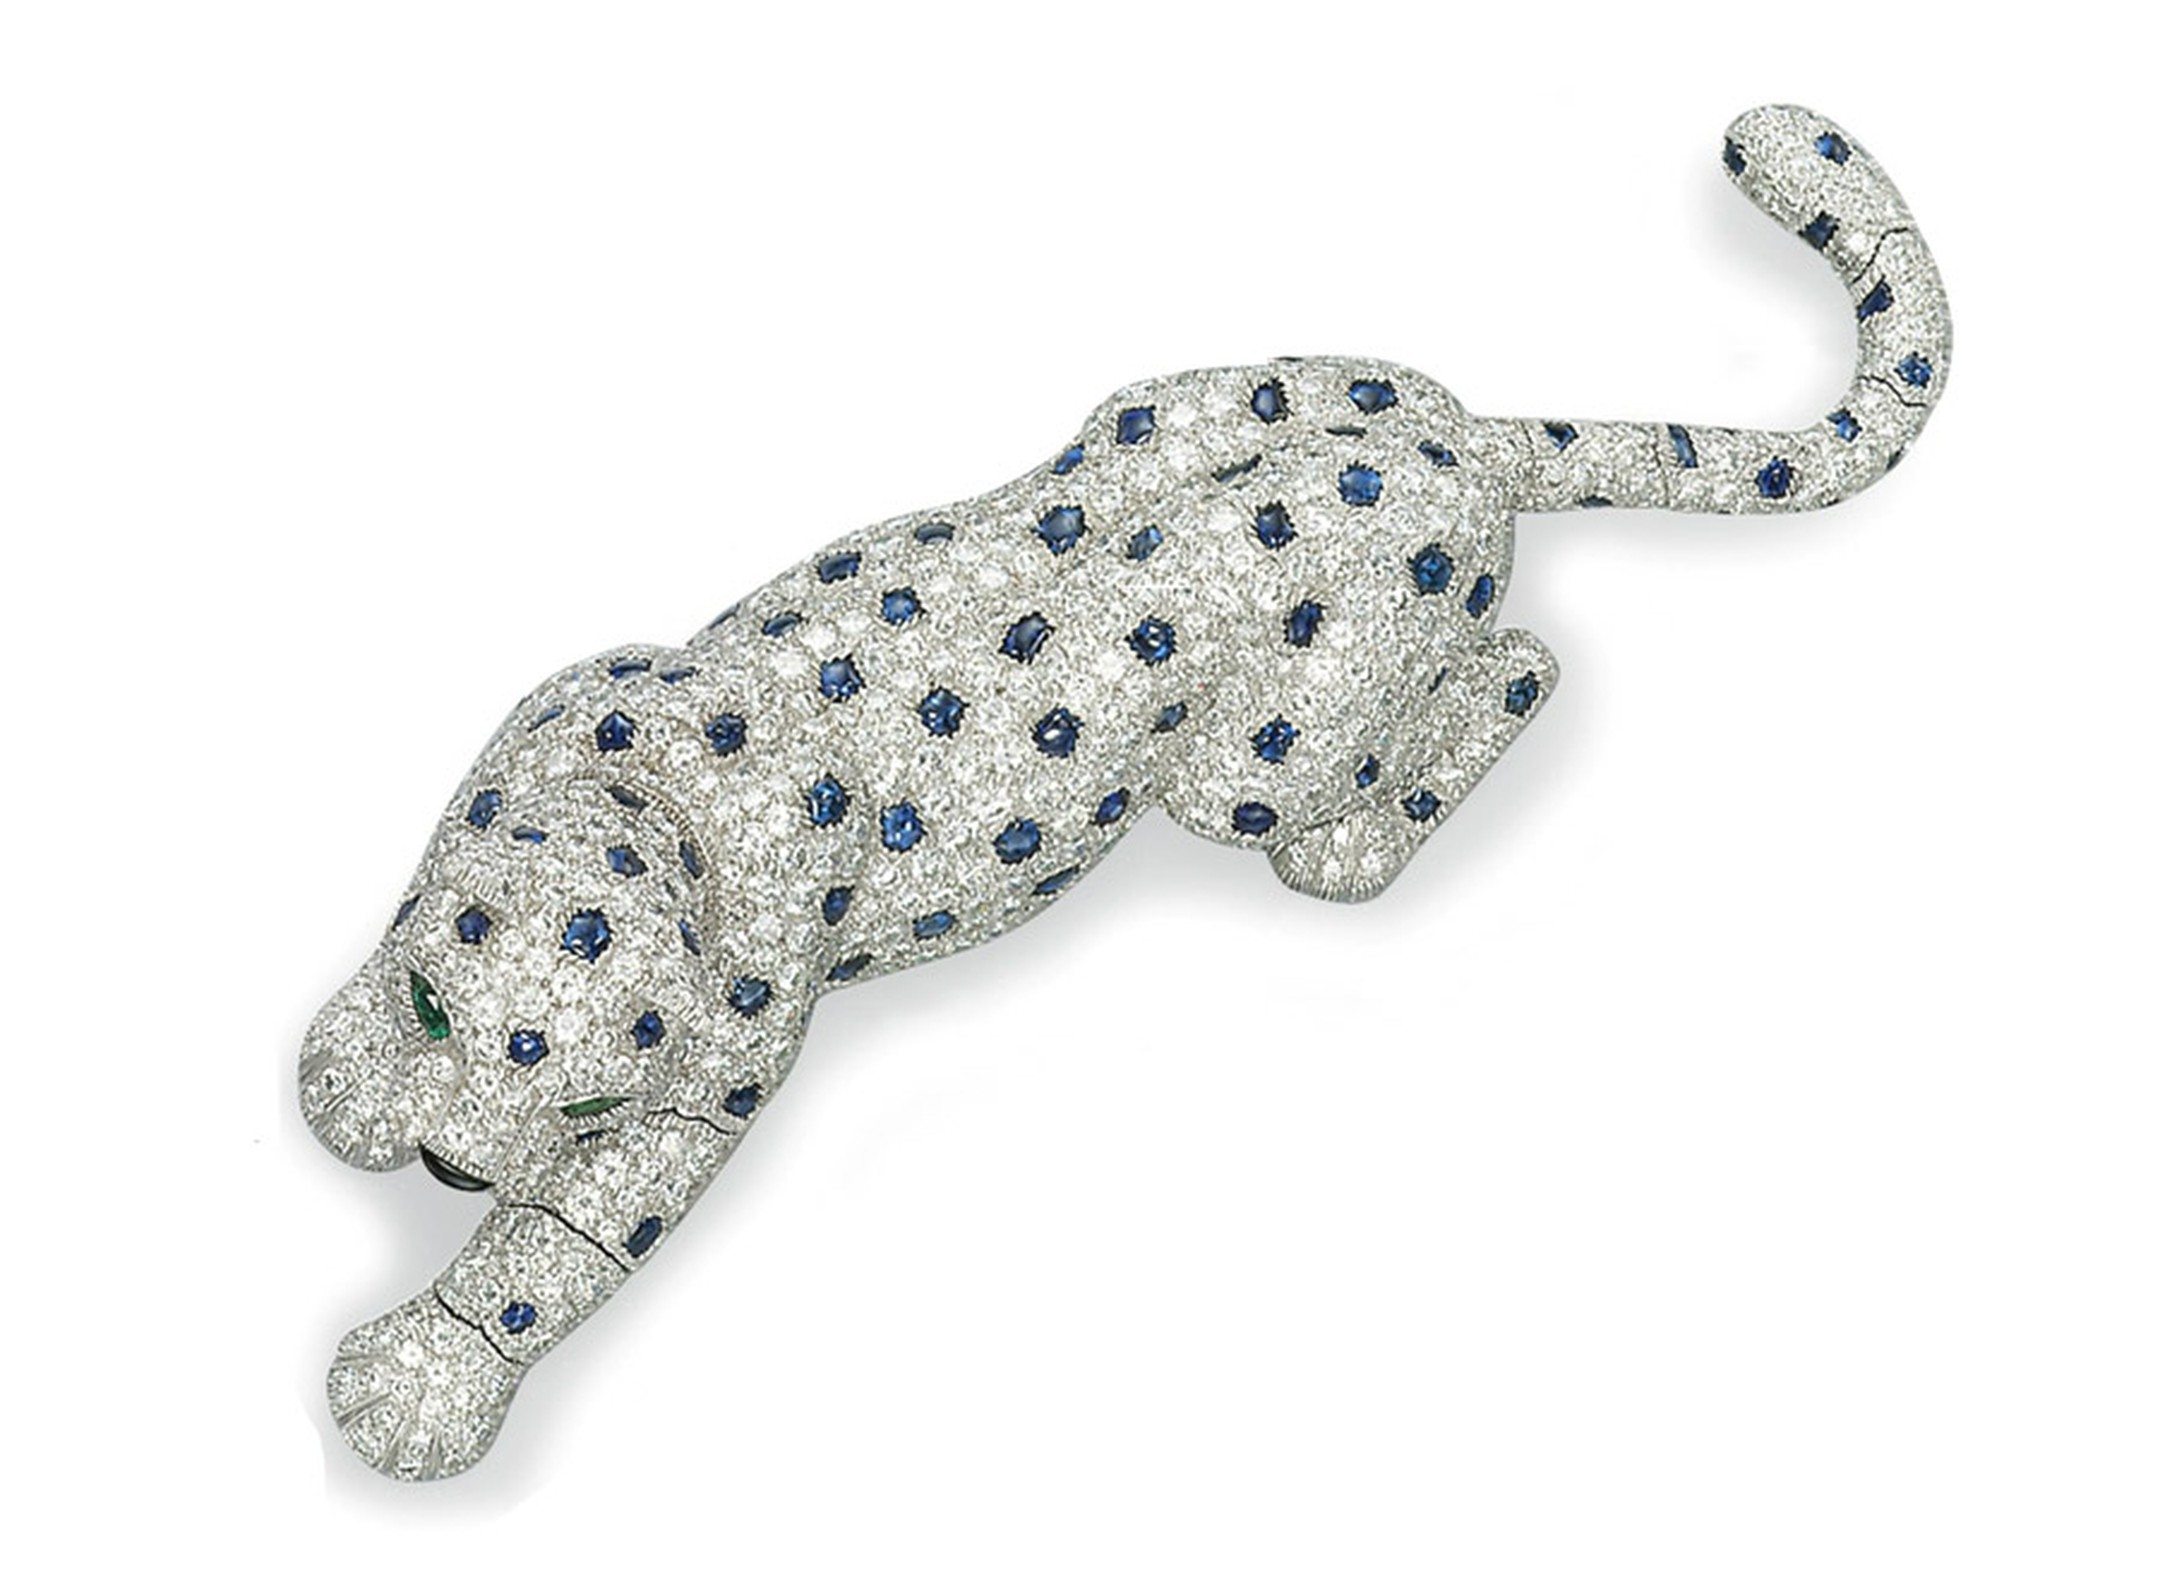 Christies-Lot-361-SAPPHIRE-DIAMOND-EMERALD-AND-ENAMEL-PANTHER-BROOCH-BY-CARTIER.jpg